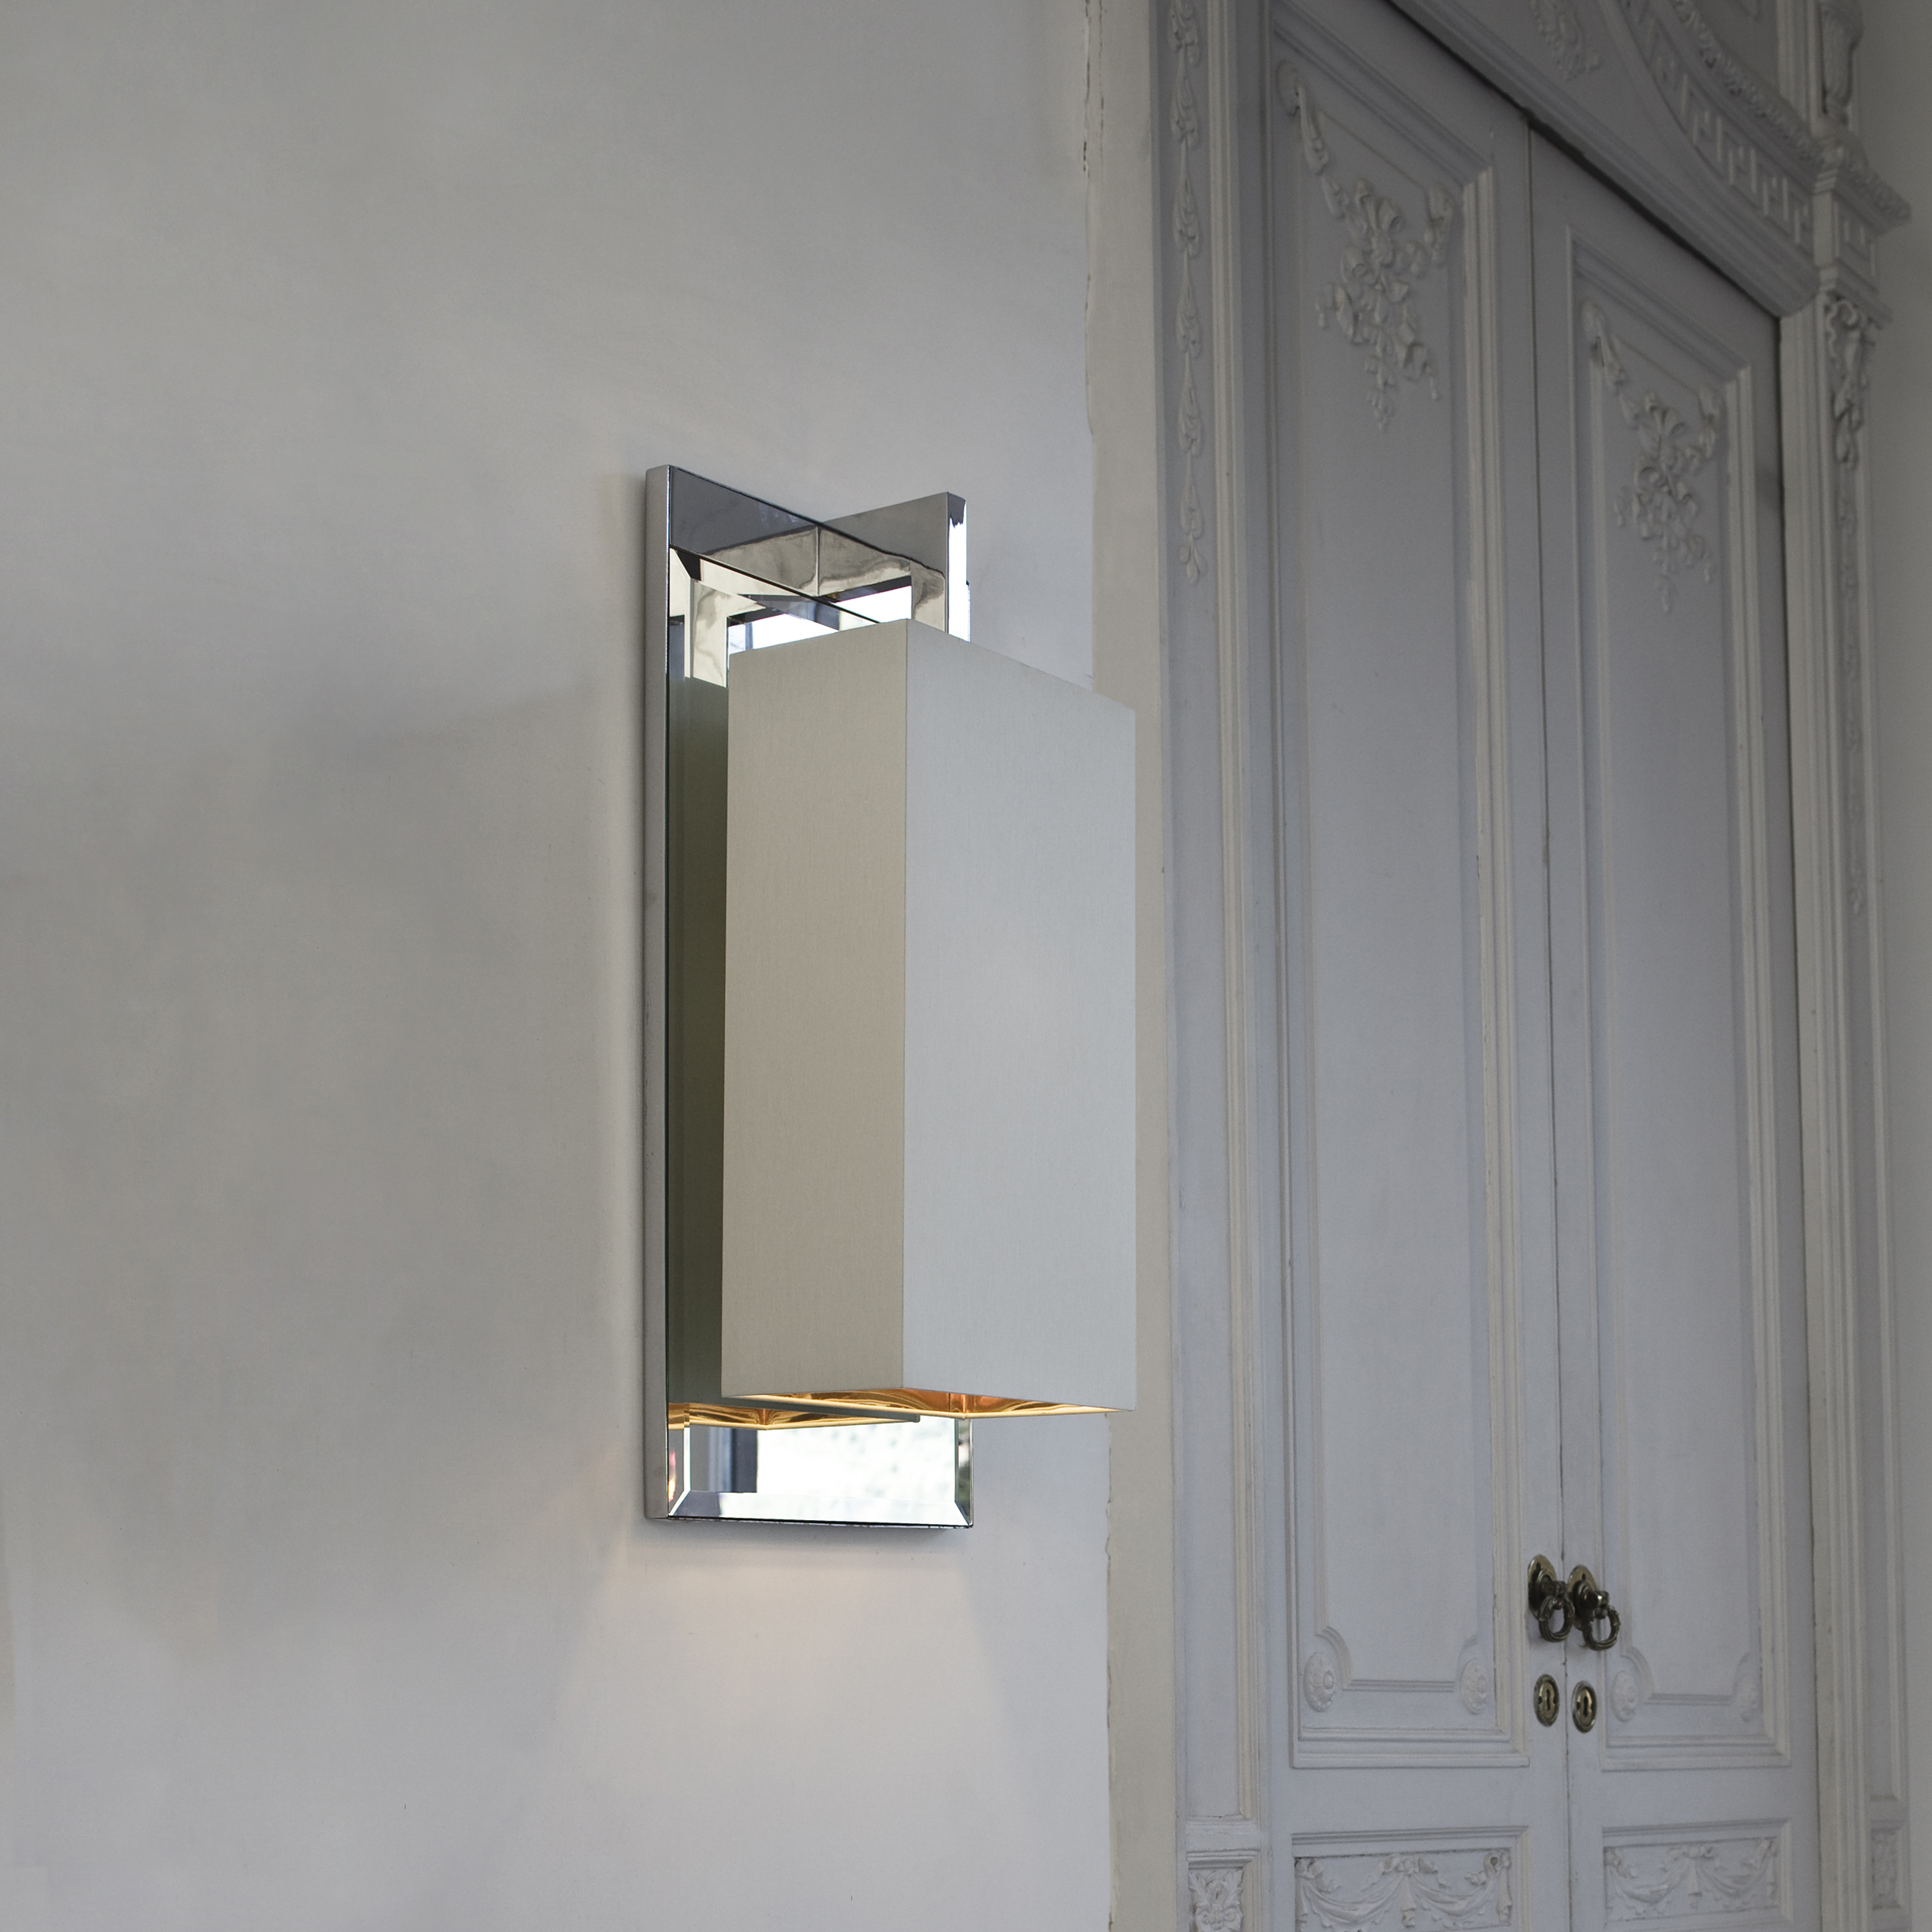 Contardi Coco Mega Ap Wall Light Chrome White Percaline Glod Lining B